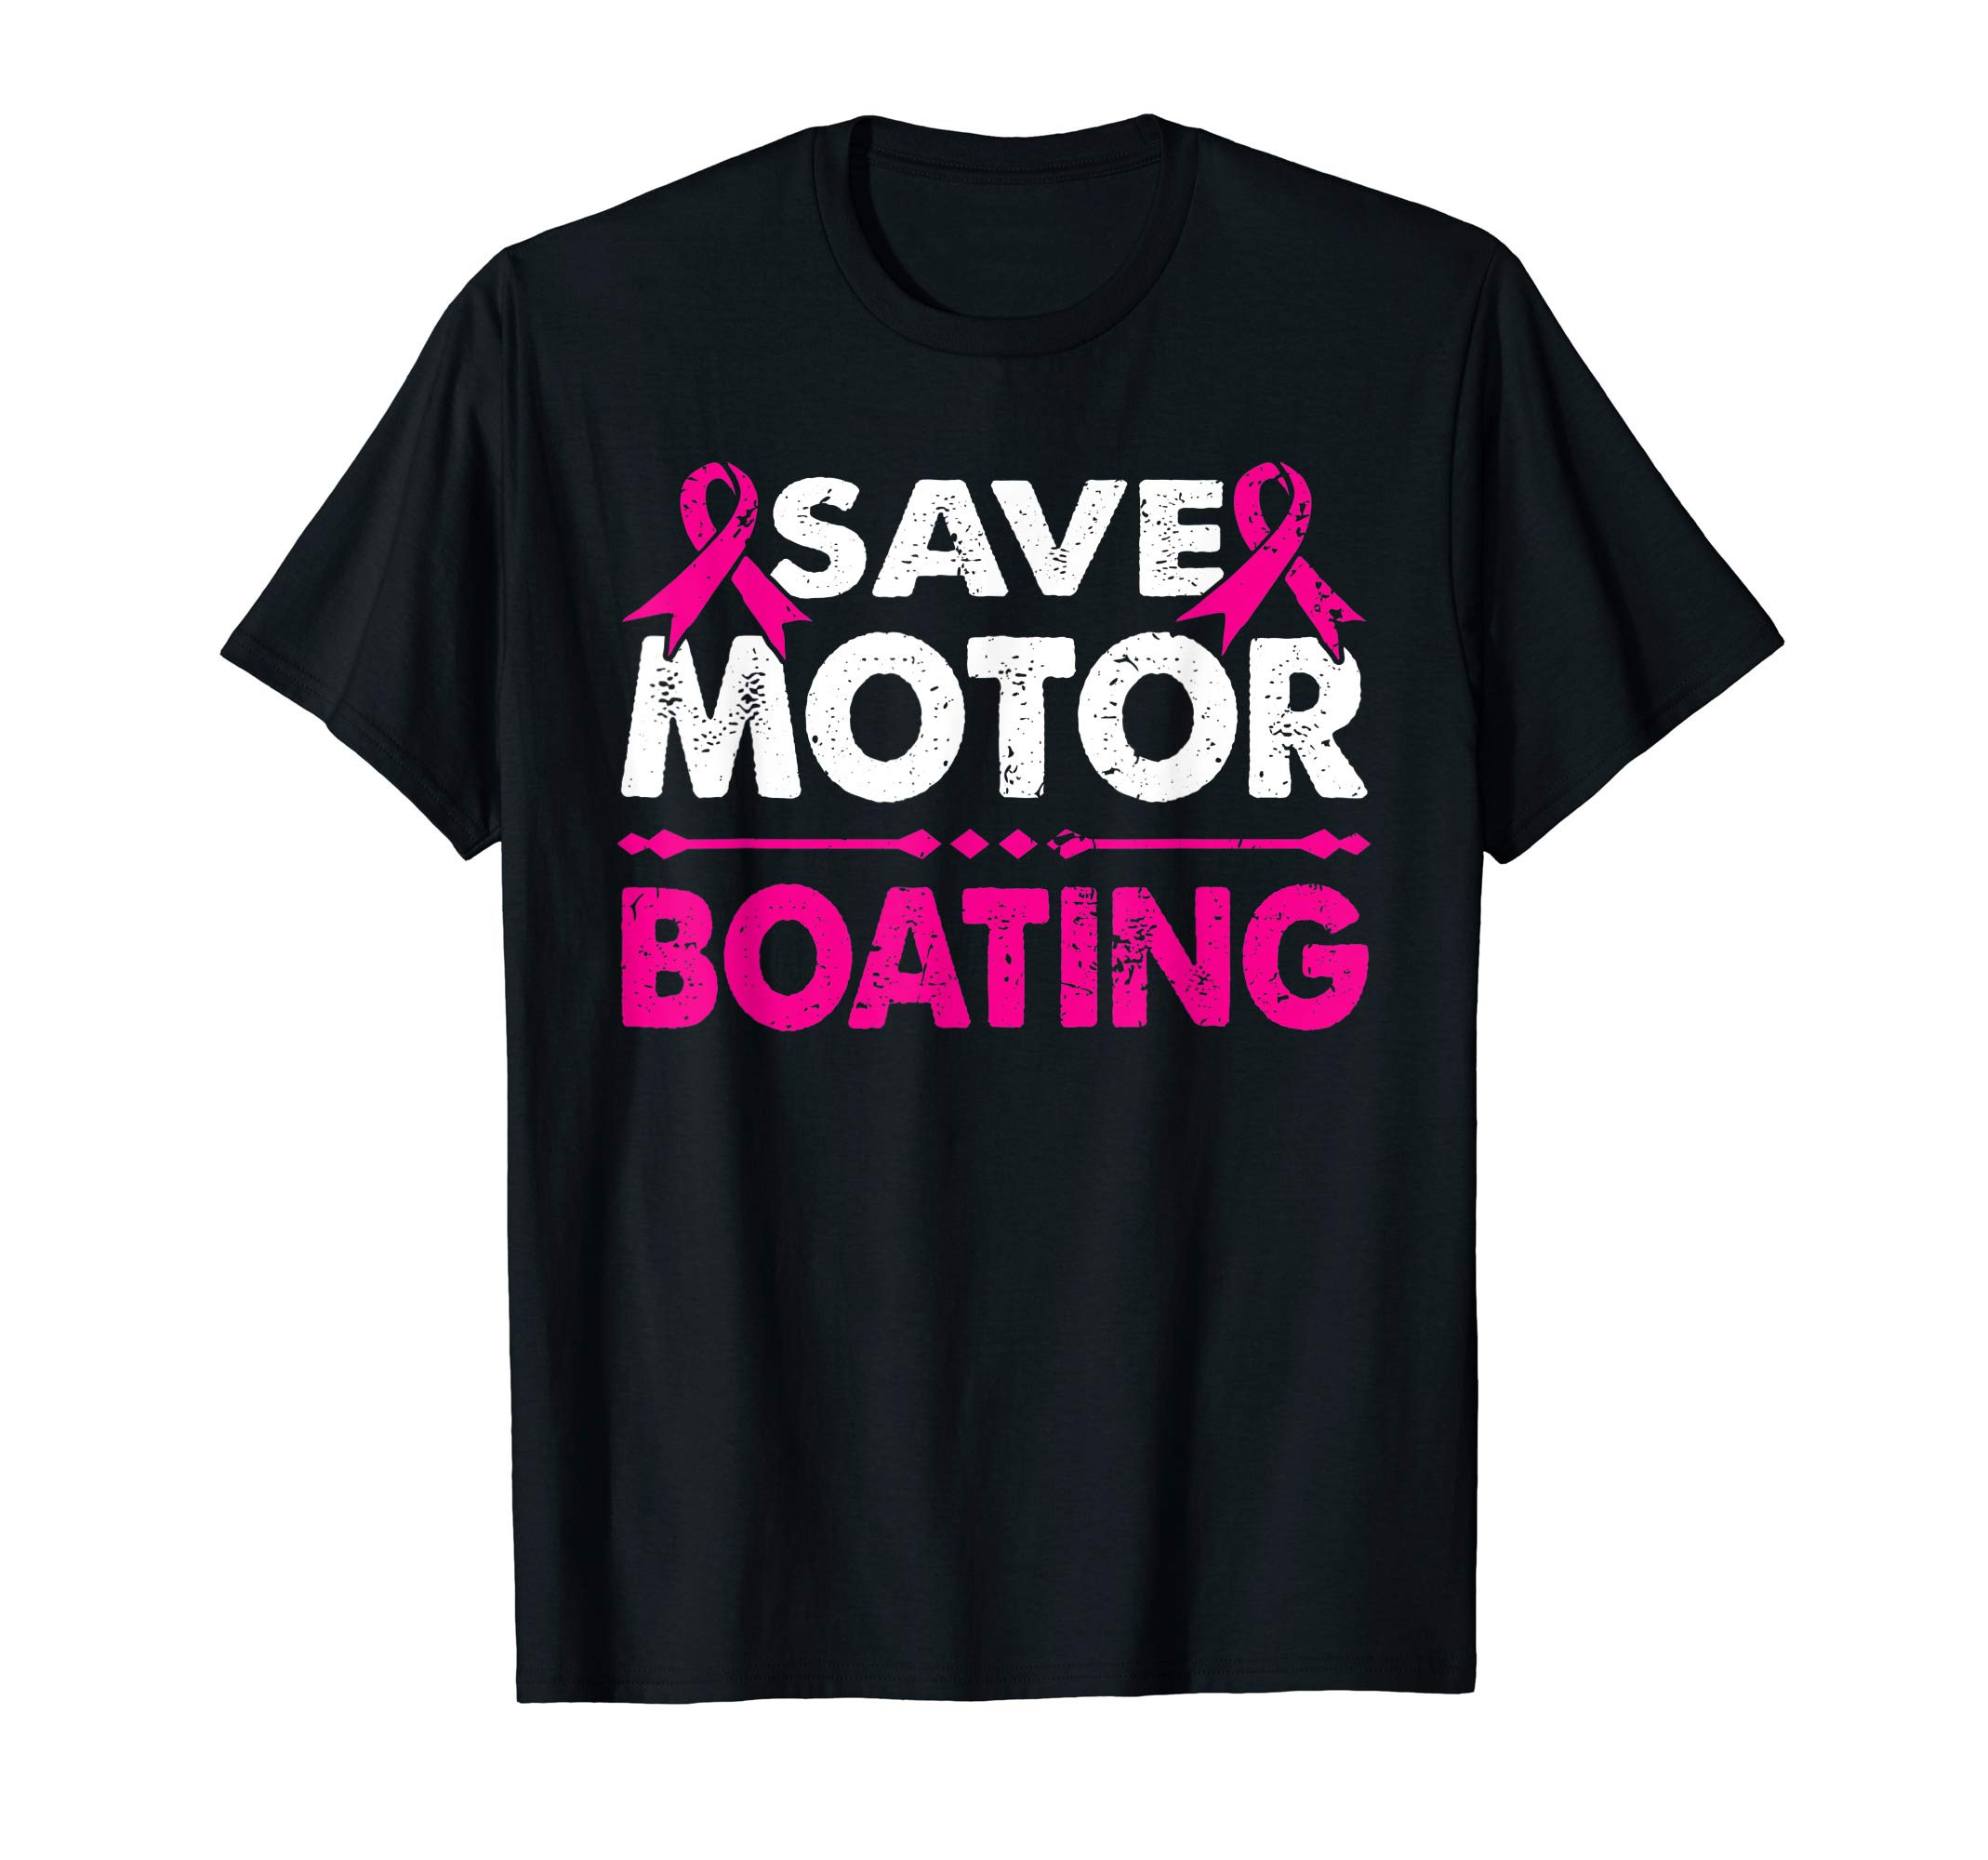 Save Motor Boating Funny Breast Cancer Pink Ribbon T-Shirt by Save Motor Boating Pink Ribbon Novelty Co.